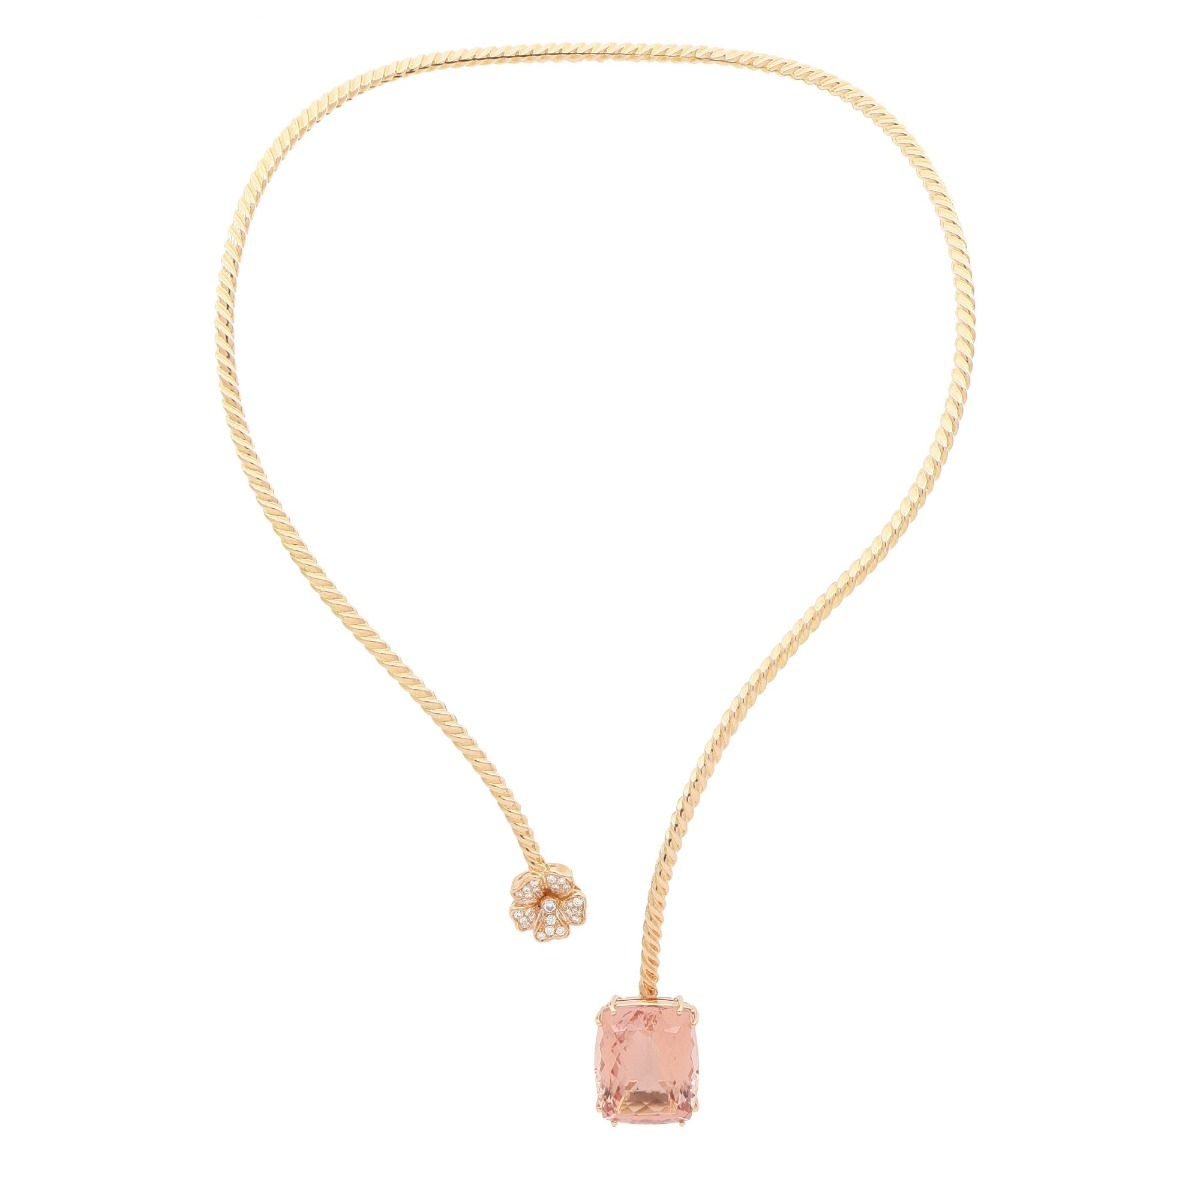 Flexible Hard Gold Necklace With Diamonds Flower And Morganite Stone